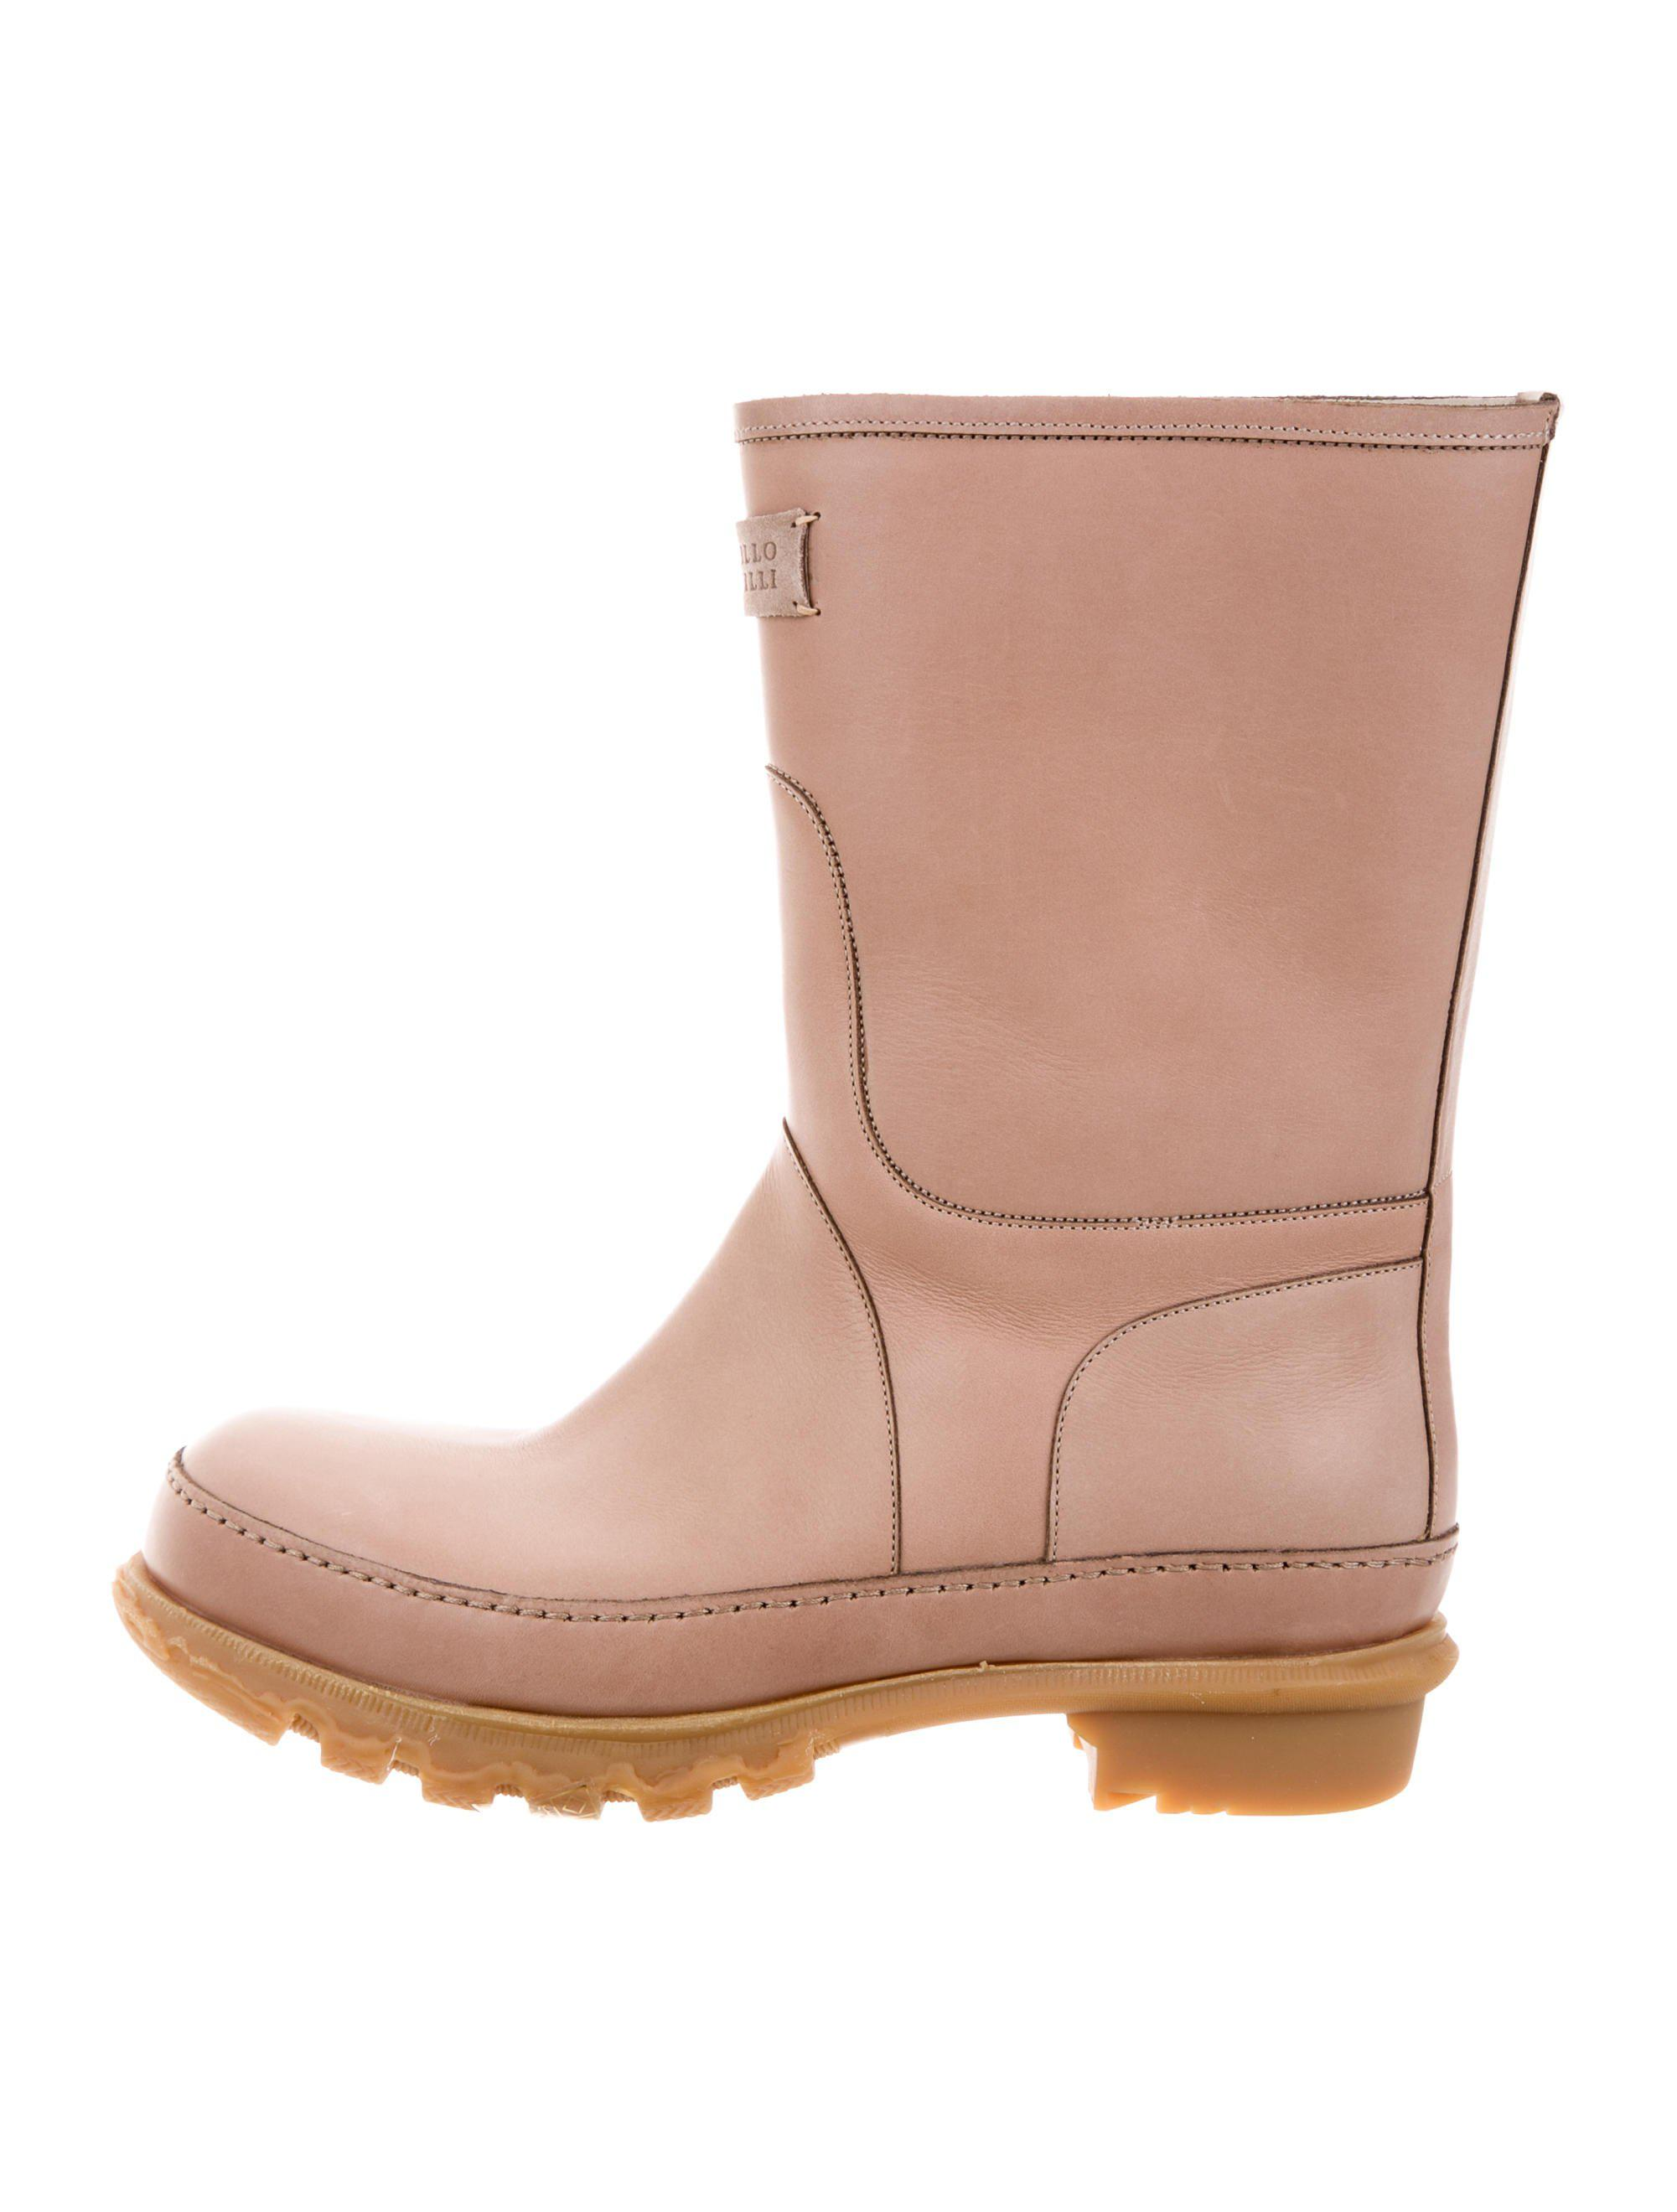 sale eastbay cheap sale best prices Brunello Cucinelli Leather Mid-Calf Boots w/ Tags clearance fake buy cheap best place largest supplier online WGndj